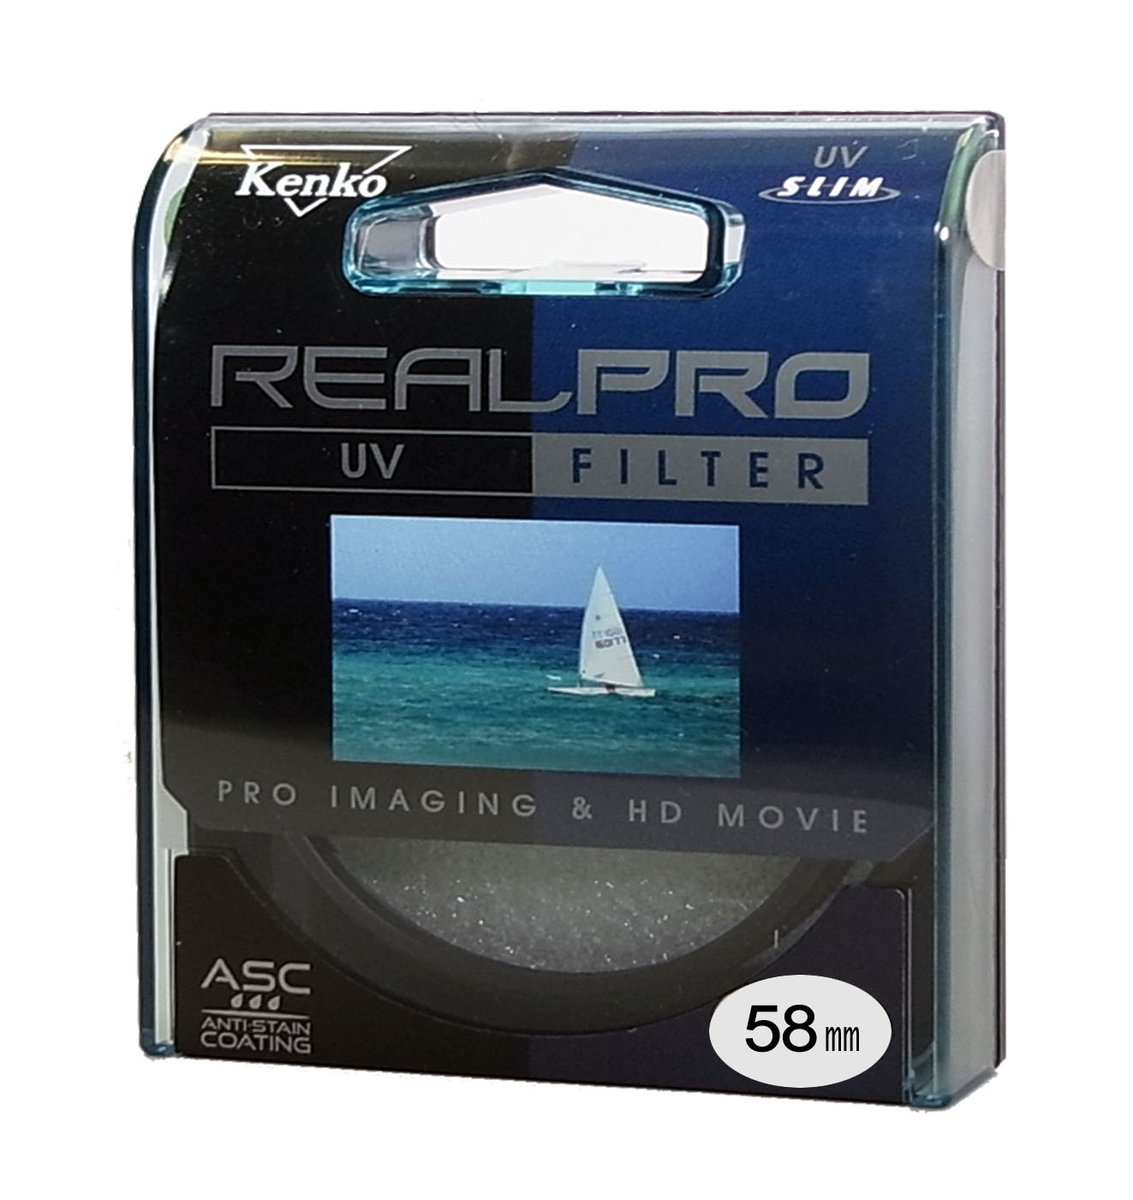 Kenko 58S Real Pro MC UV Filter